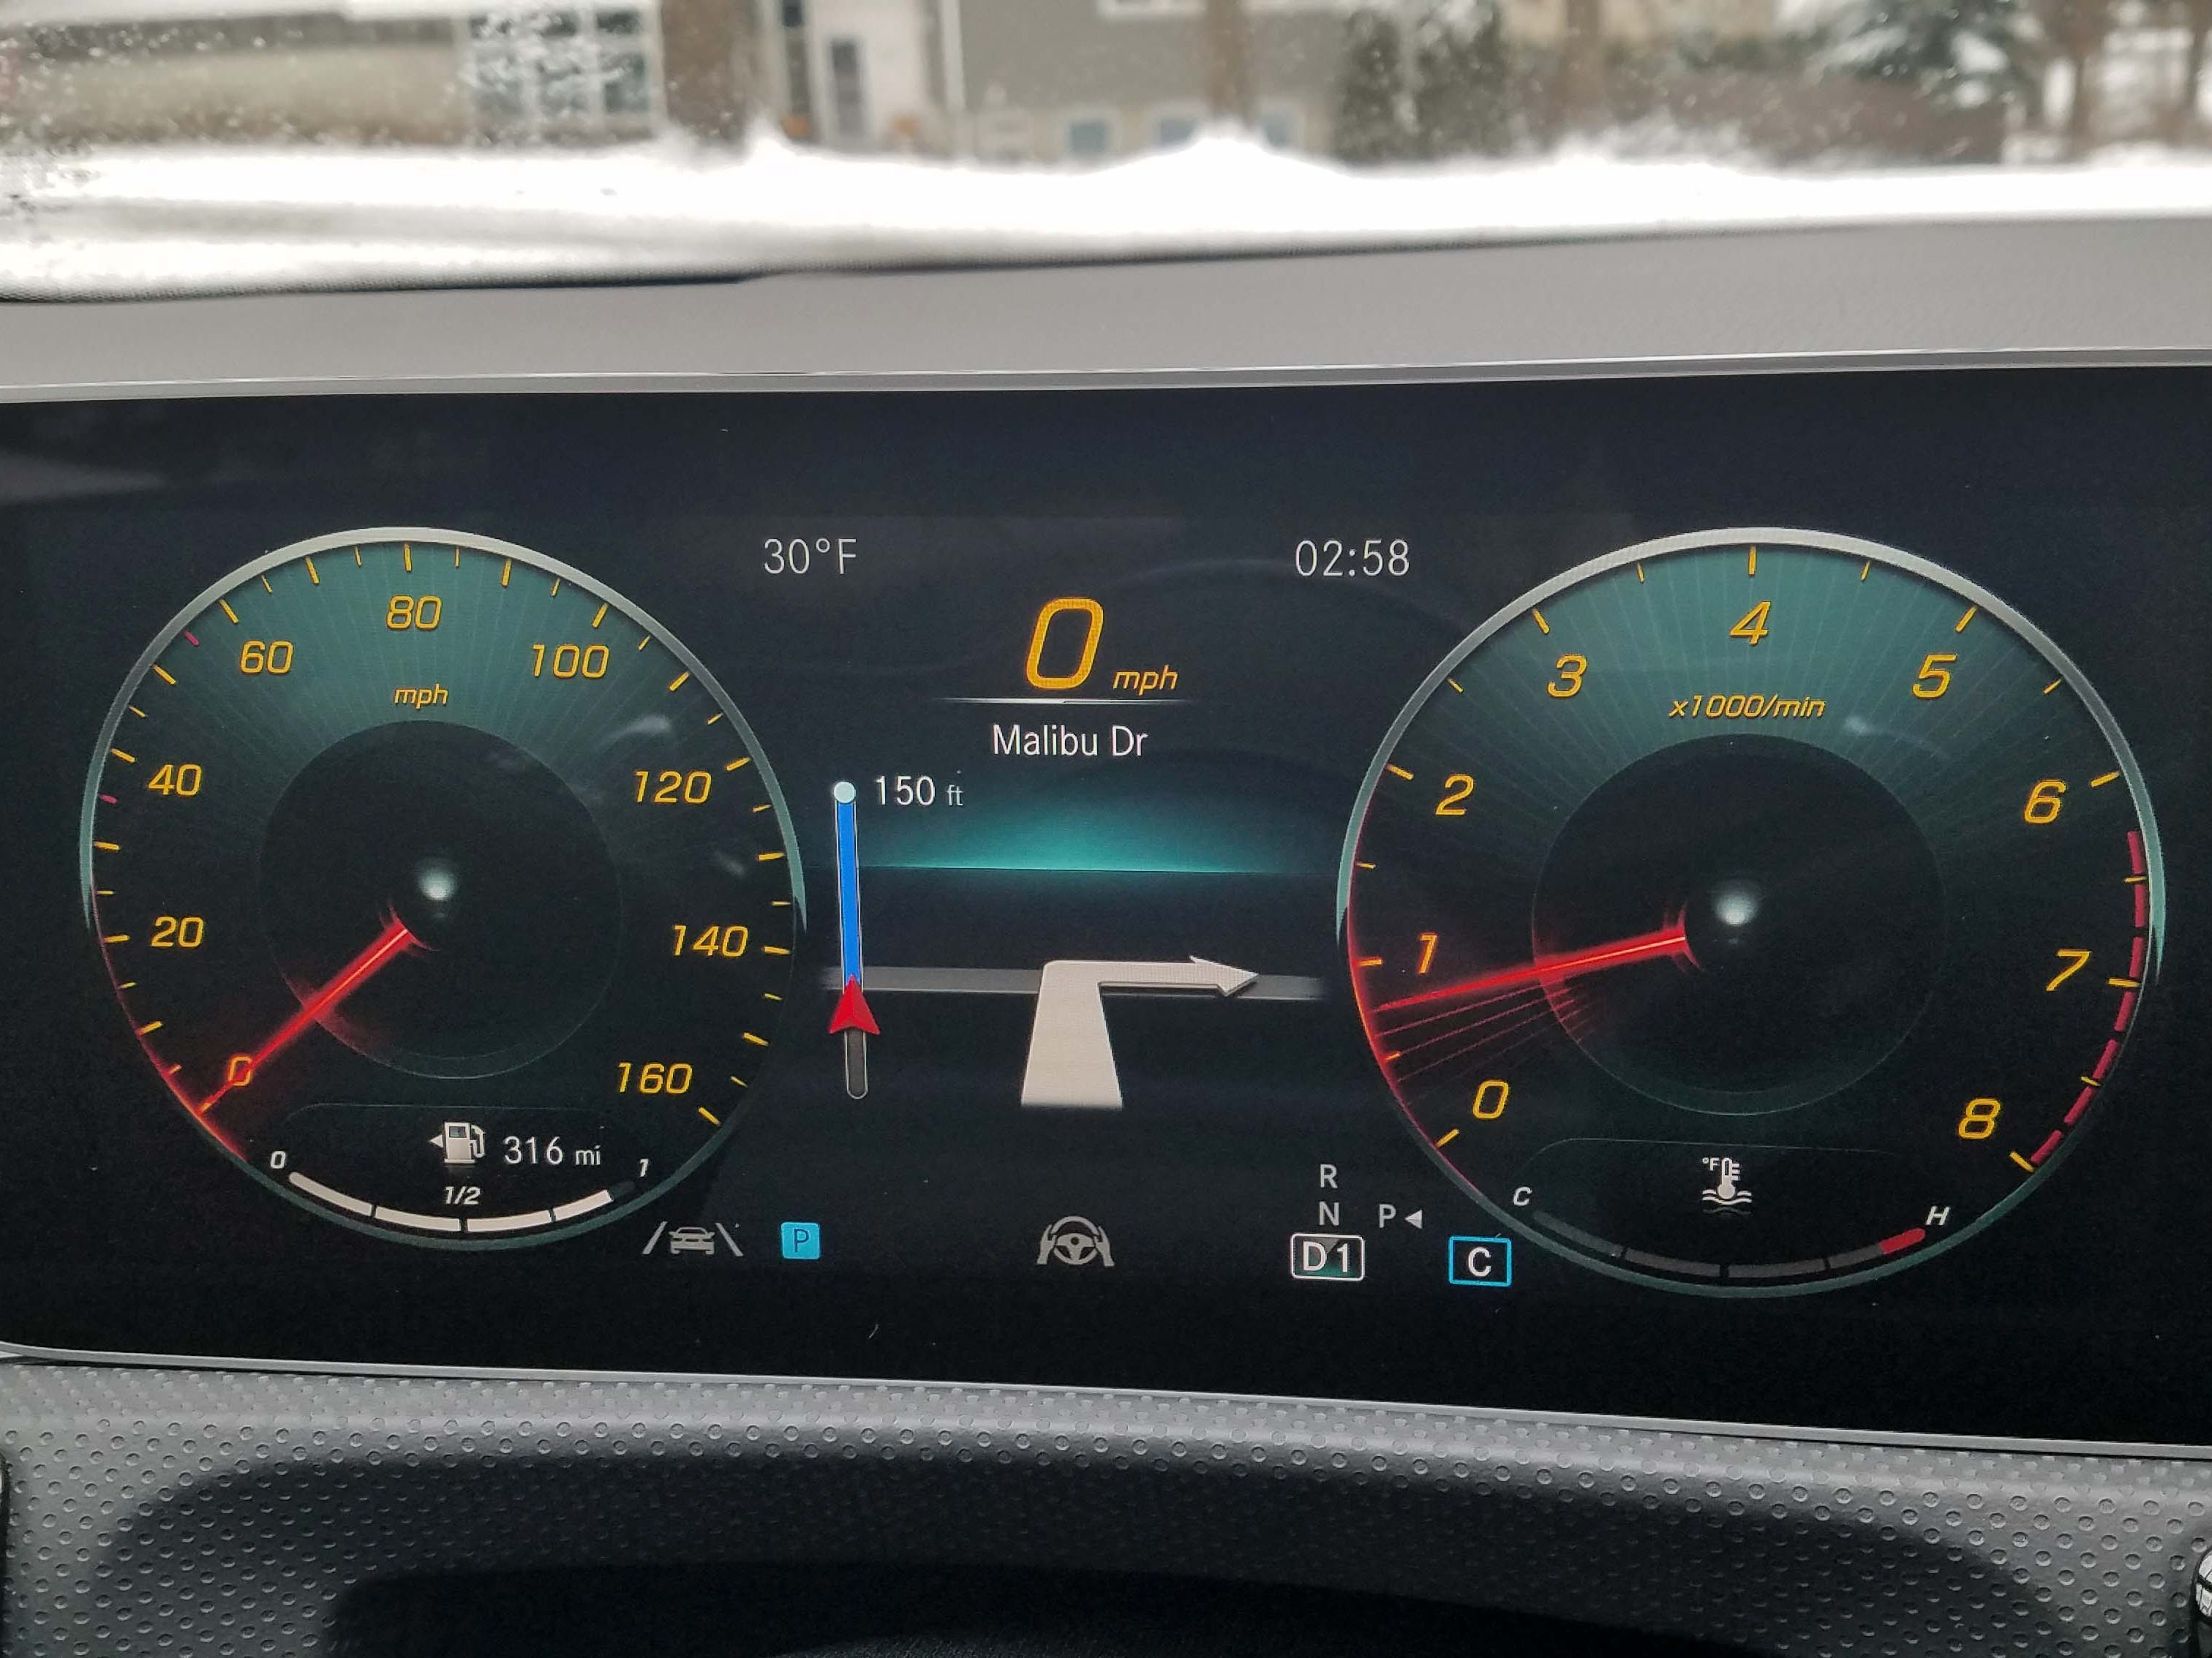 The digital instrument cluster of the Mercedes A220 shares a horizontal panel with the infotainment display, and is both configurable and easy to navigate.